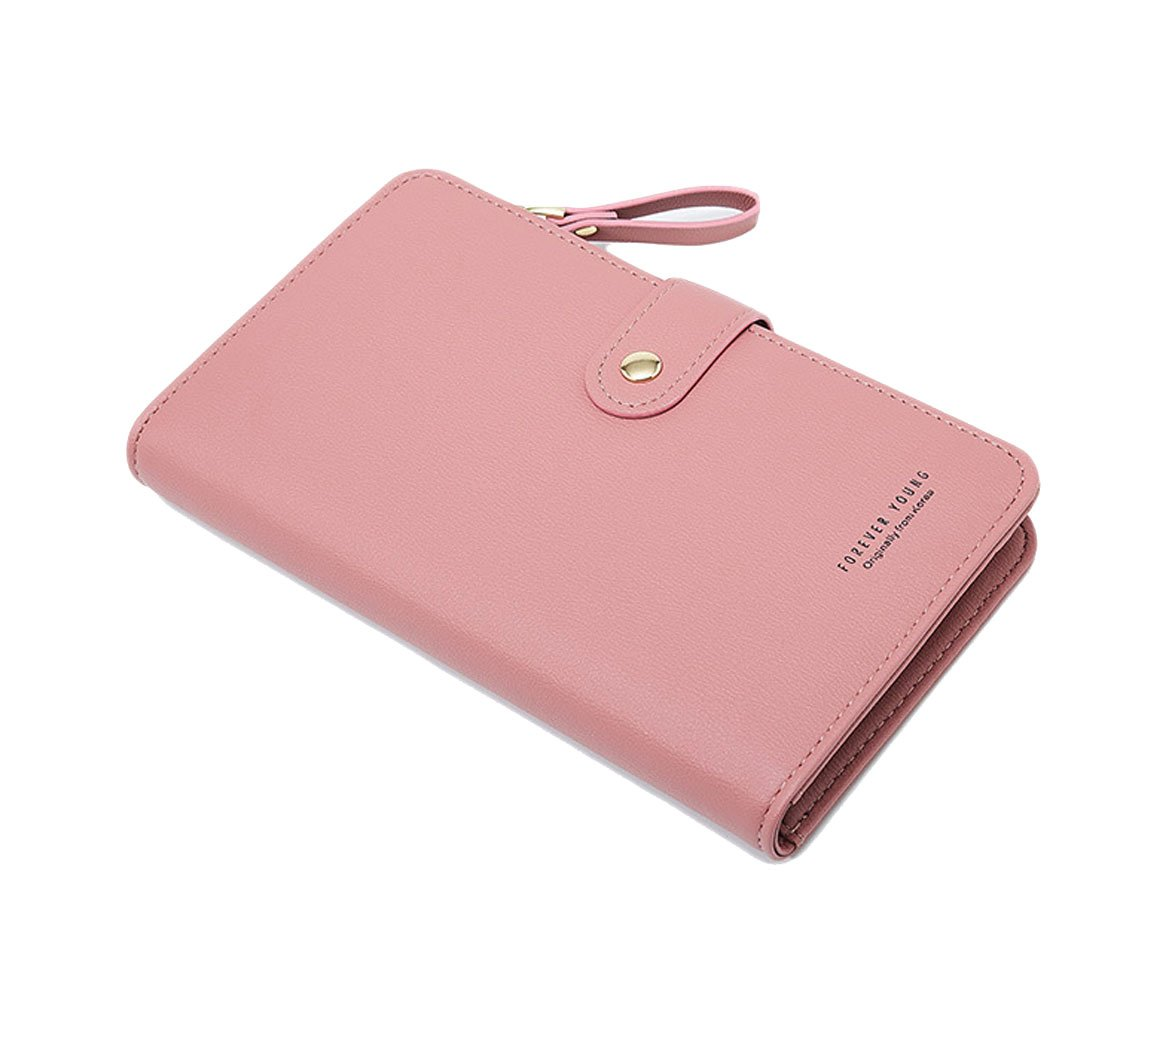 Travel Wallet Passport Holder Cellphone Pocket Leather Handbag Protective Case Roomy Credit Card Case Zipper Pocket Warmpink